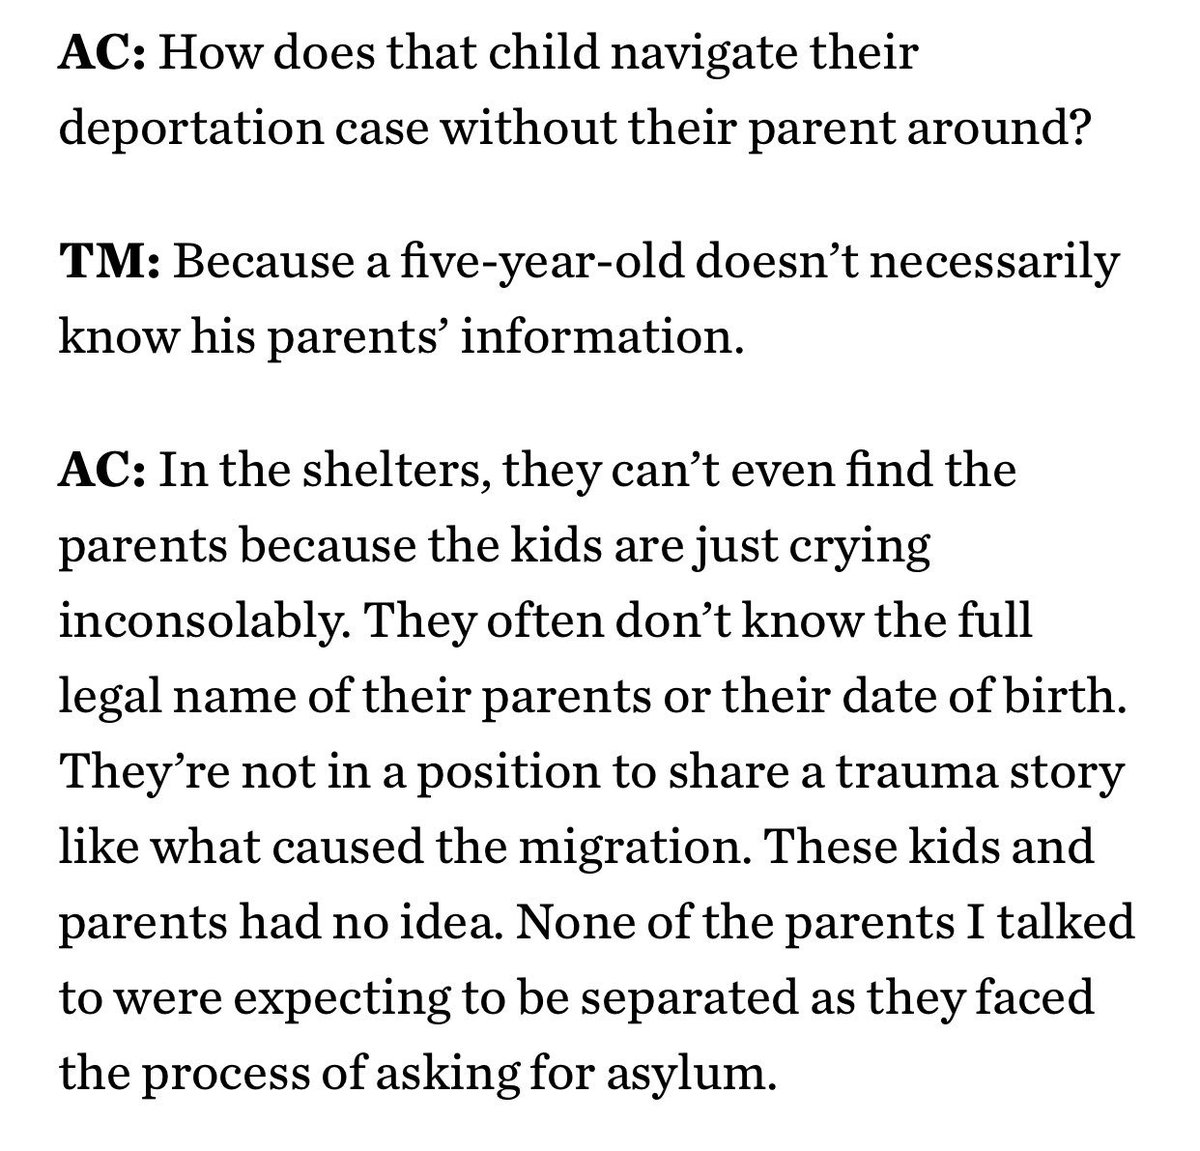 One more: what happens when parents are deported WITHOUT their children, and then it's the children's turn?